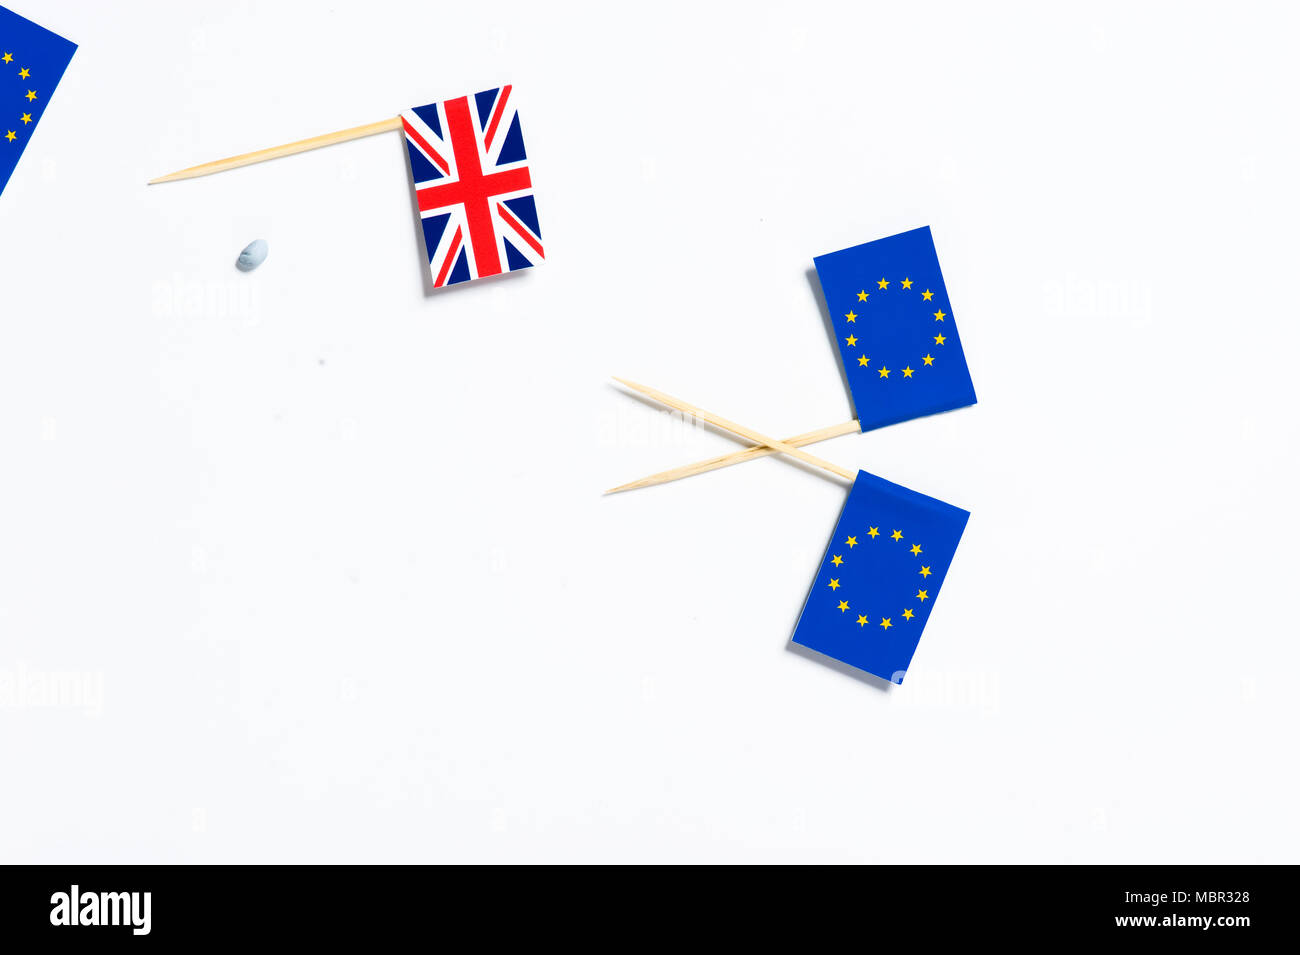 One Union Jack flag and two European Union flags on a white background - Stock Image